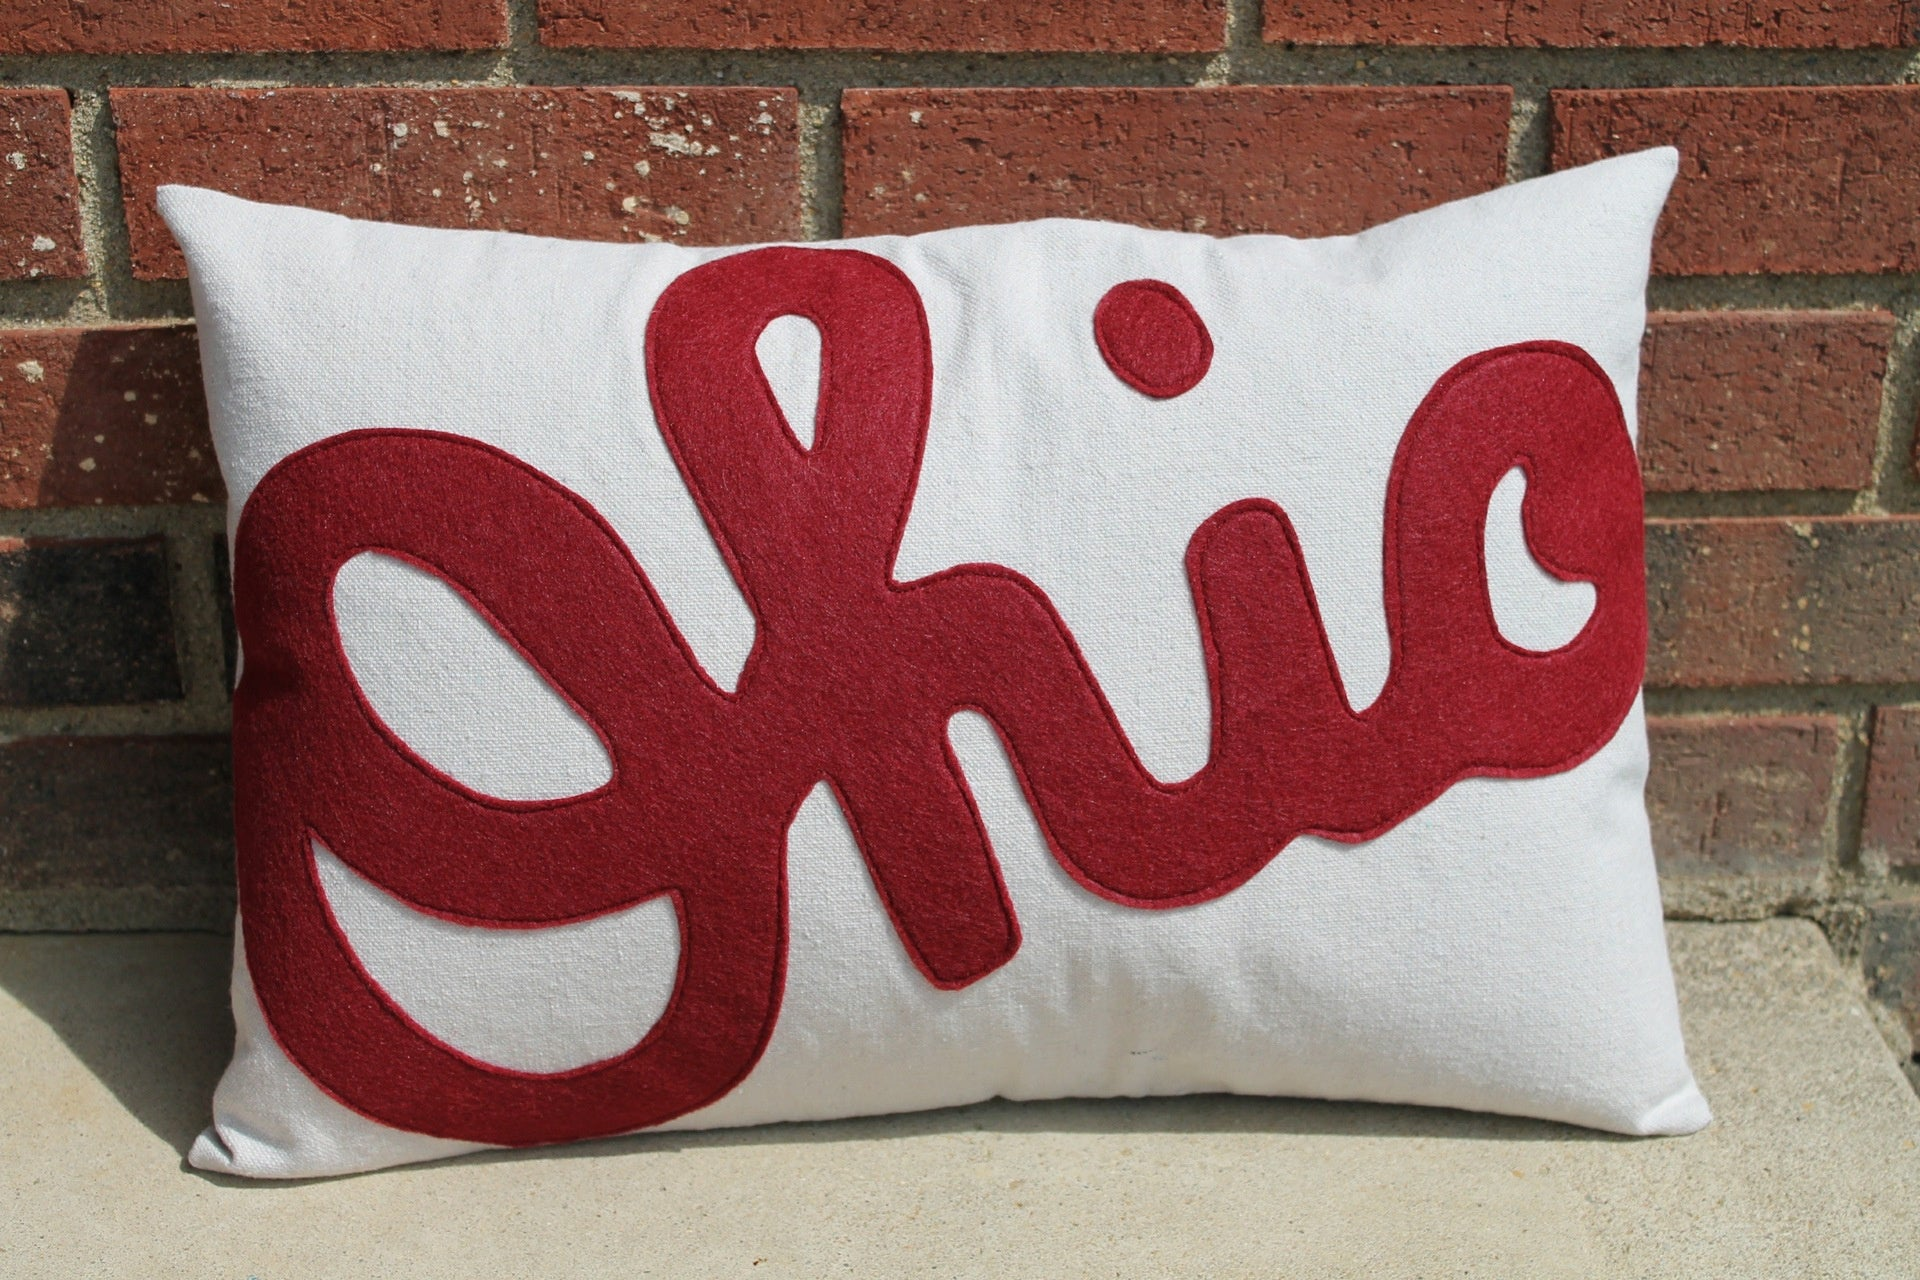 Script Ohio Pillow - 12x18 Oversized - Celebrate Local, Shop The Best of Ohio